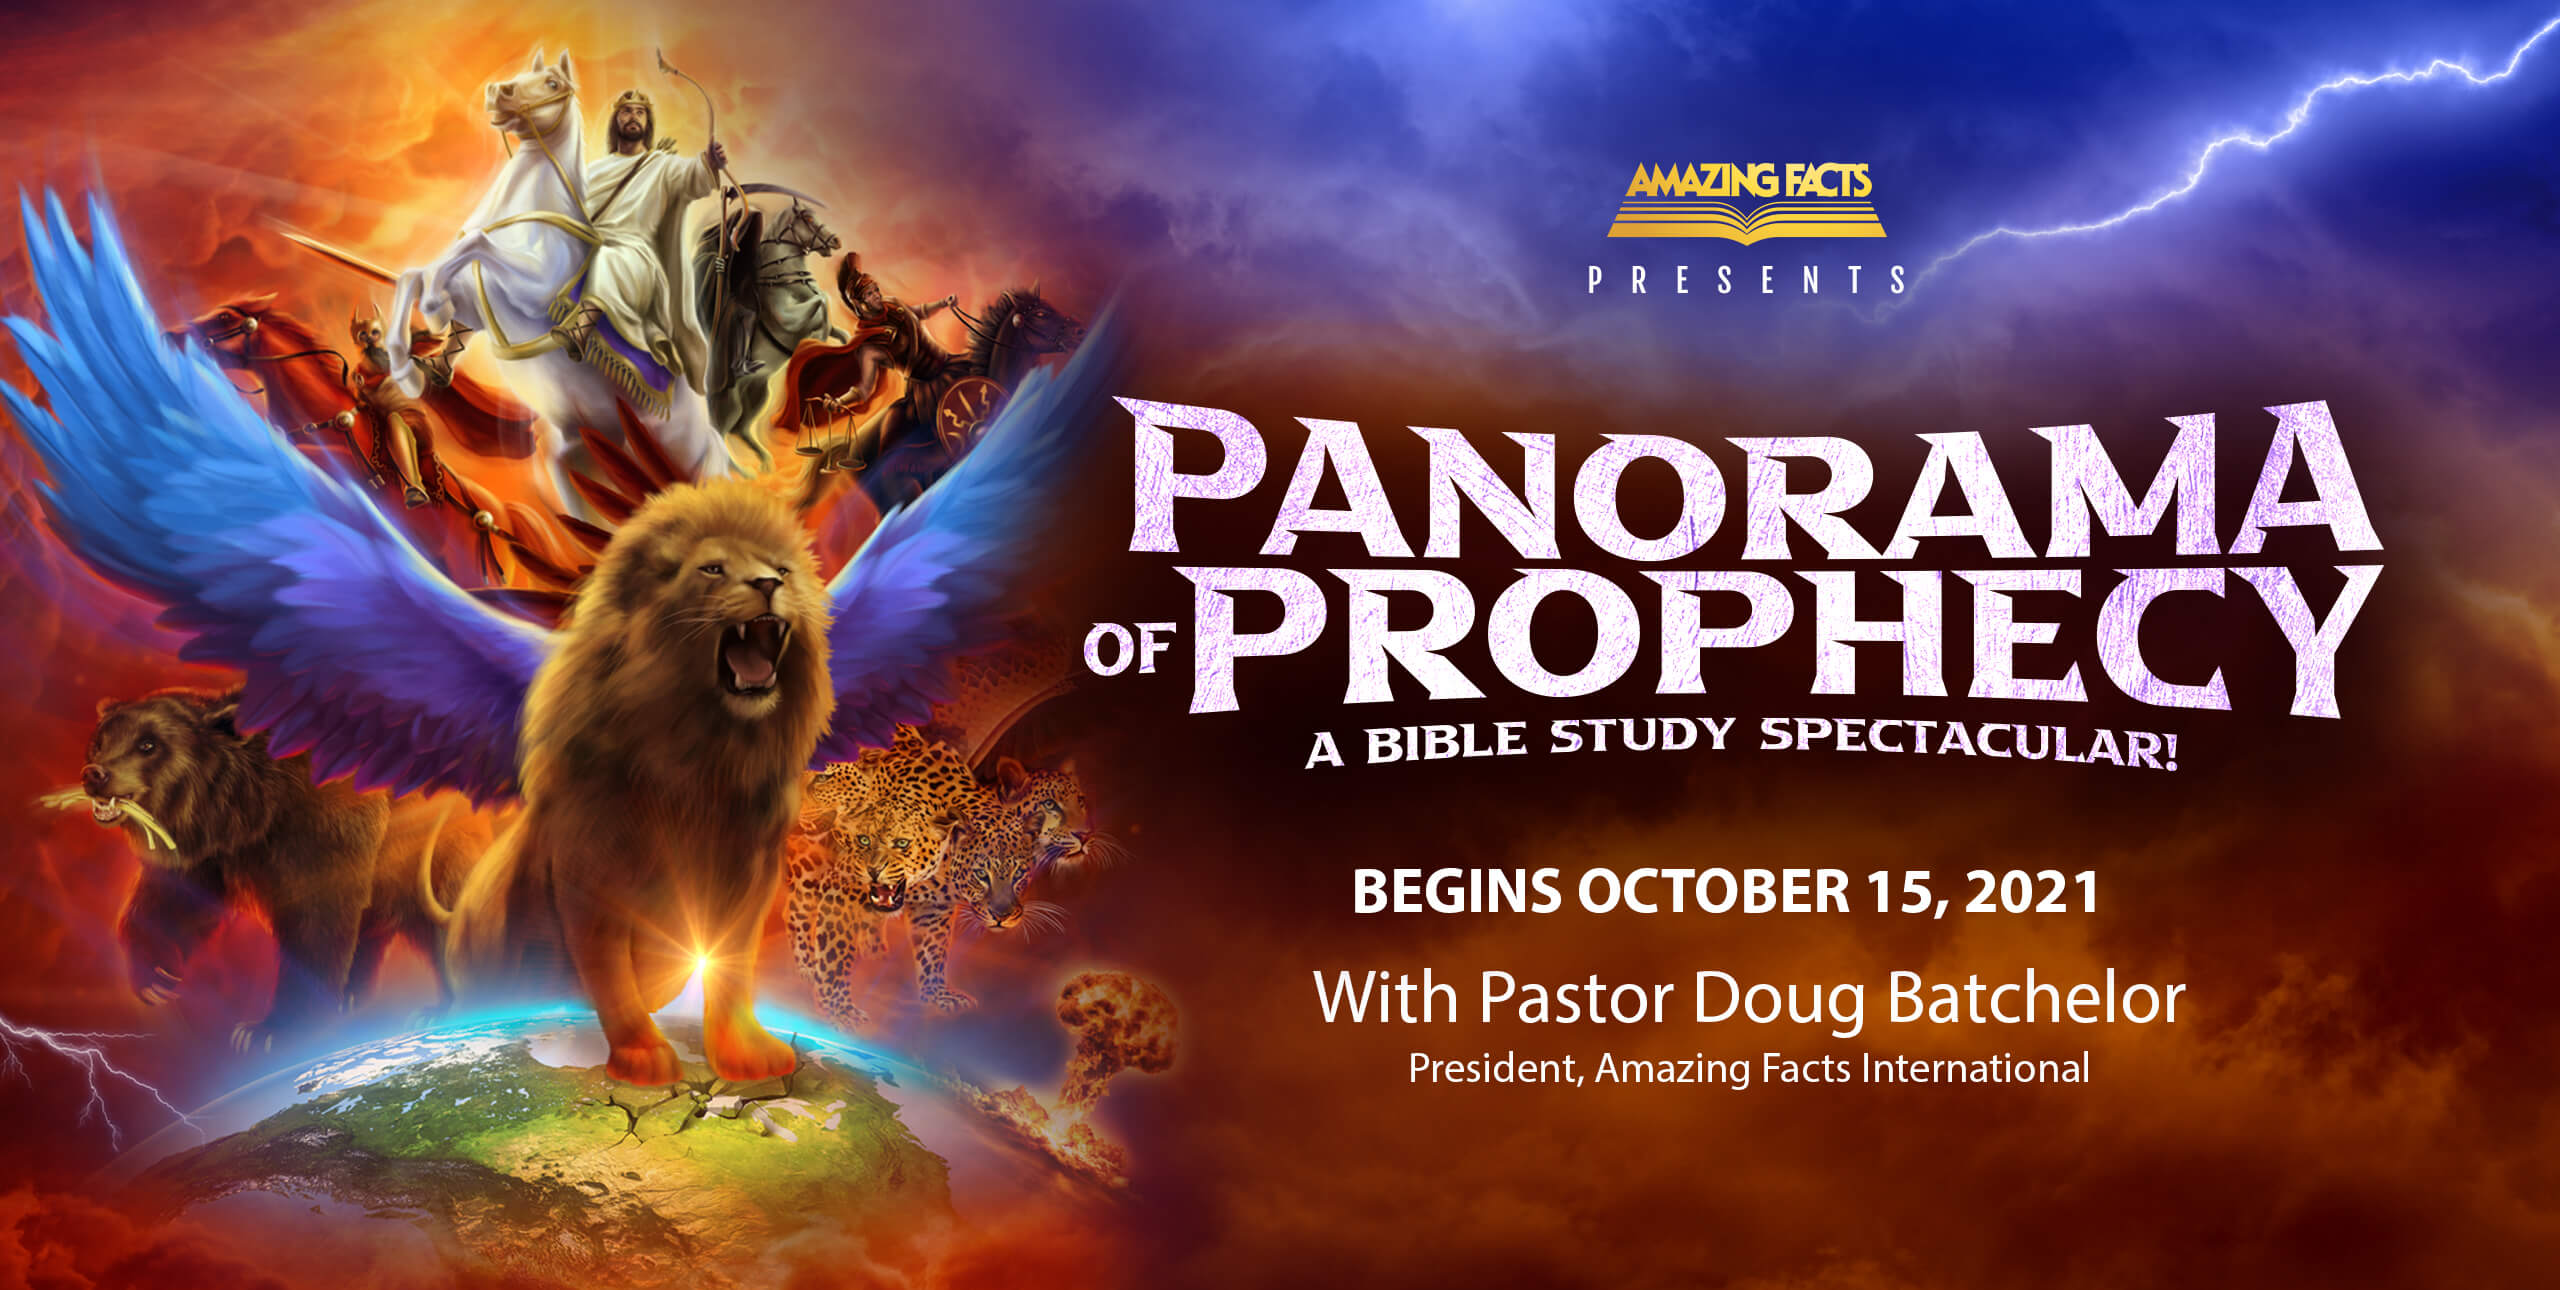 Panorama of Prophecy!